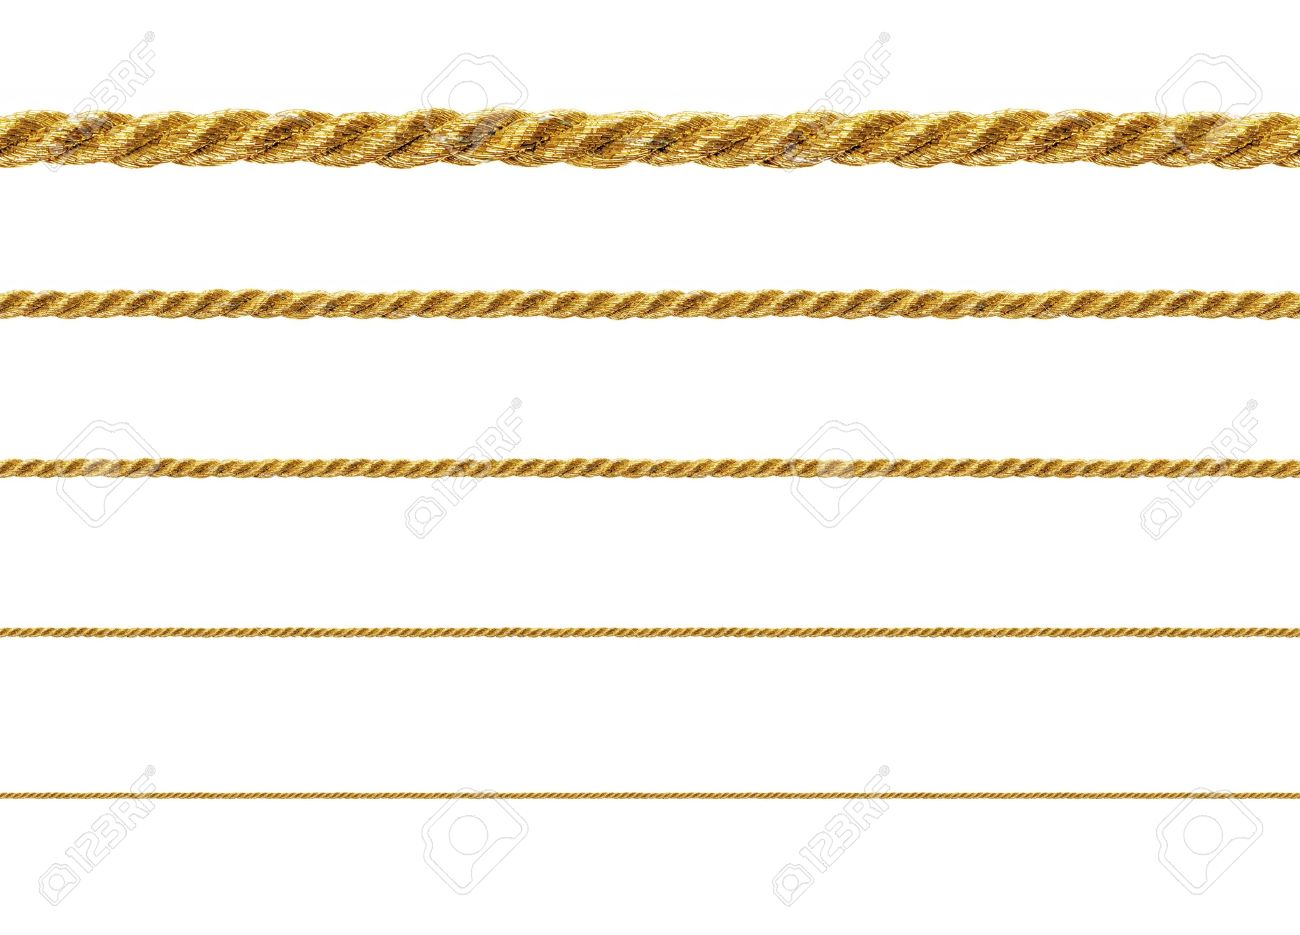 Seamless golden rope isolated on white background for continuous replicate. Stock Photo - 12982296